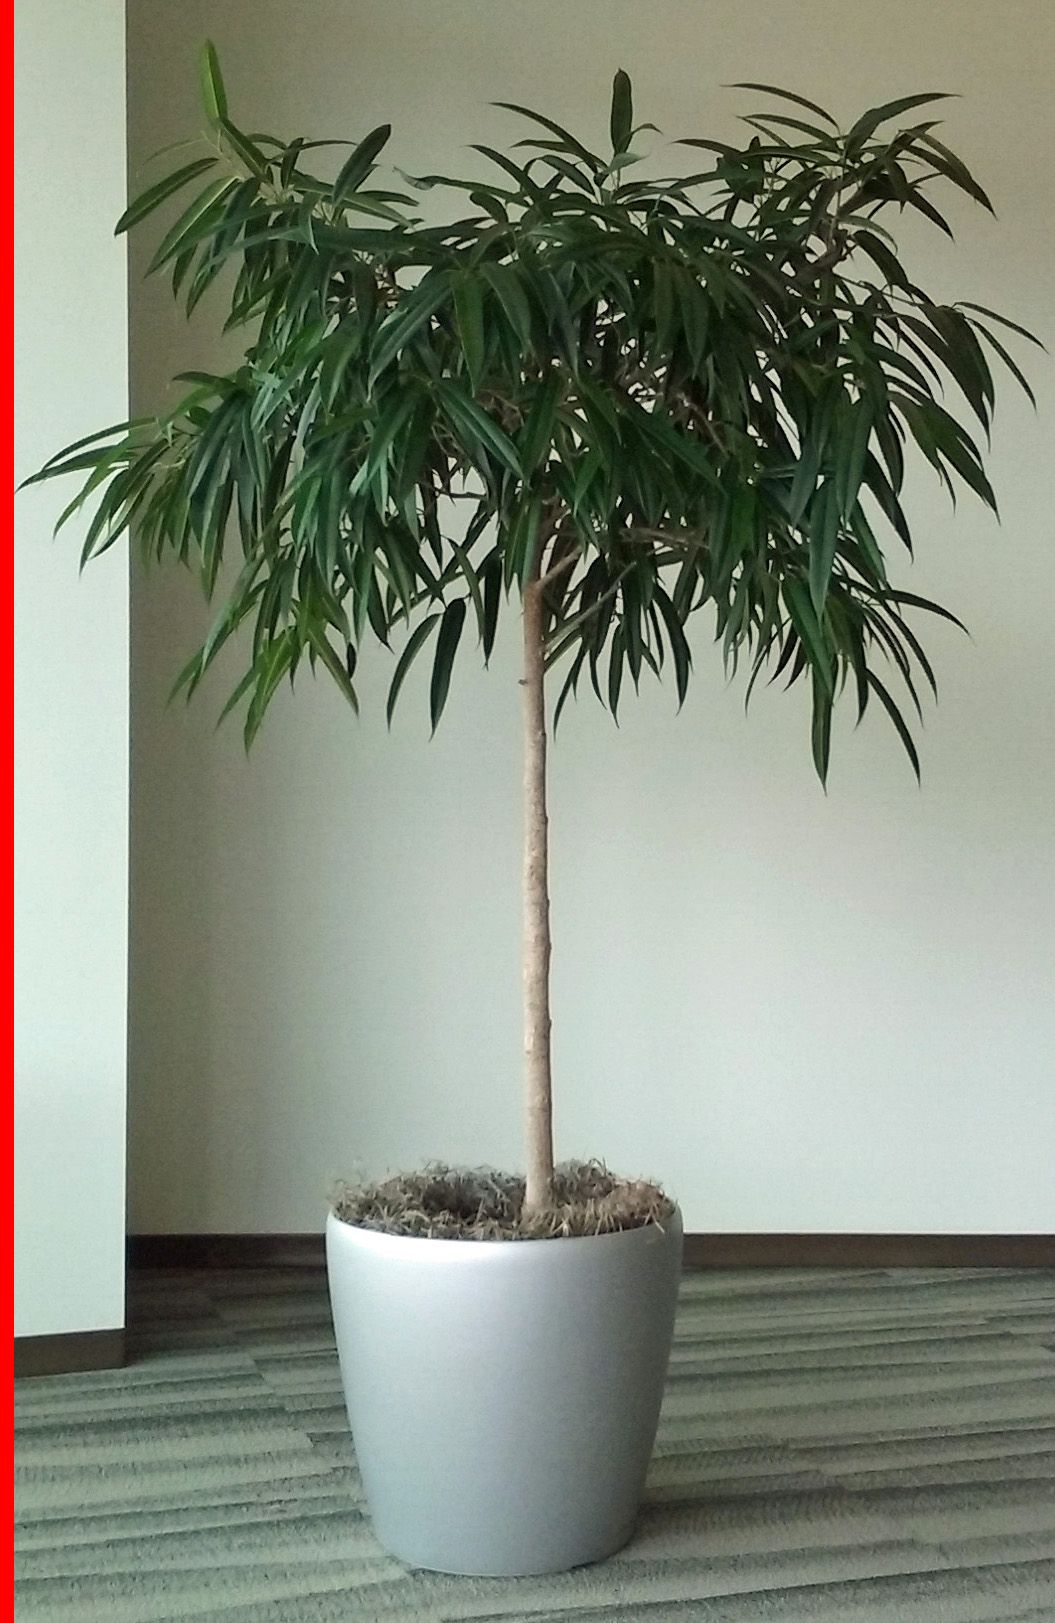 sumptuous design ideas green house plant identification. Phone Experts in interior landscape plants  holiday decor and care for indoor office flowers This plant is a Ficus Alii Standard It related to the